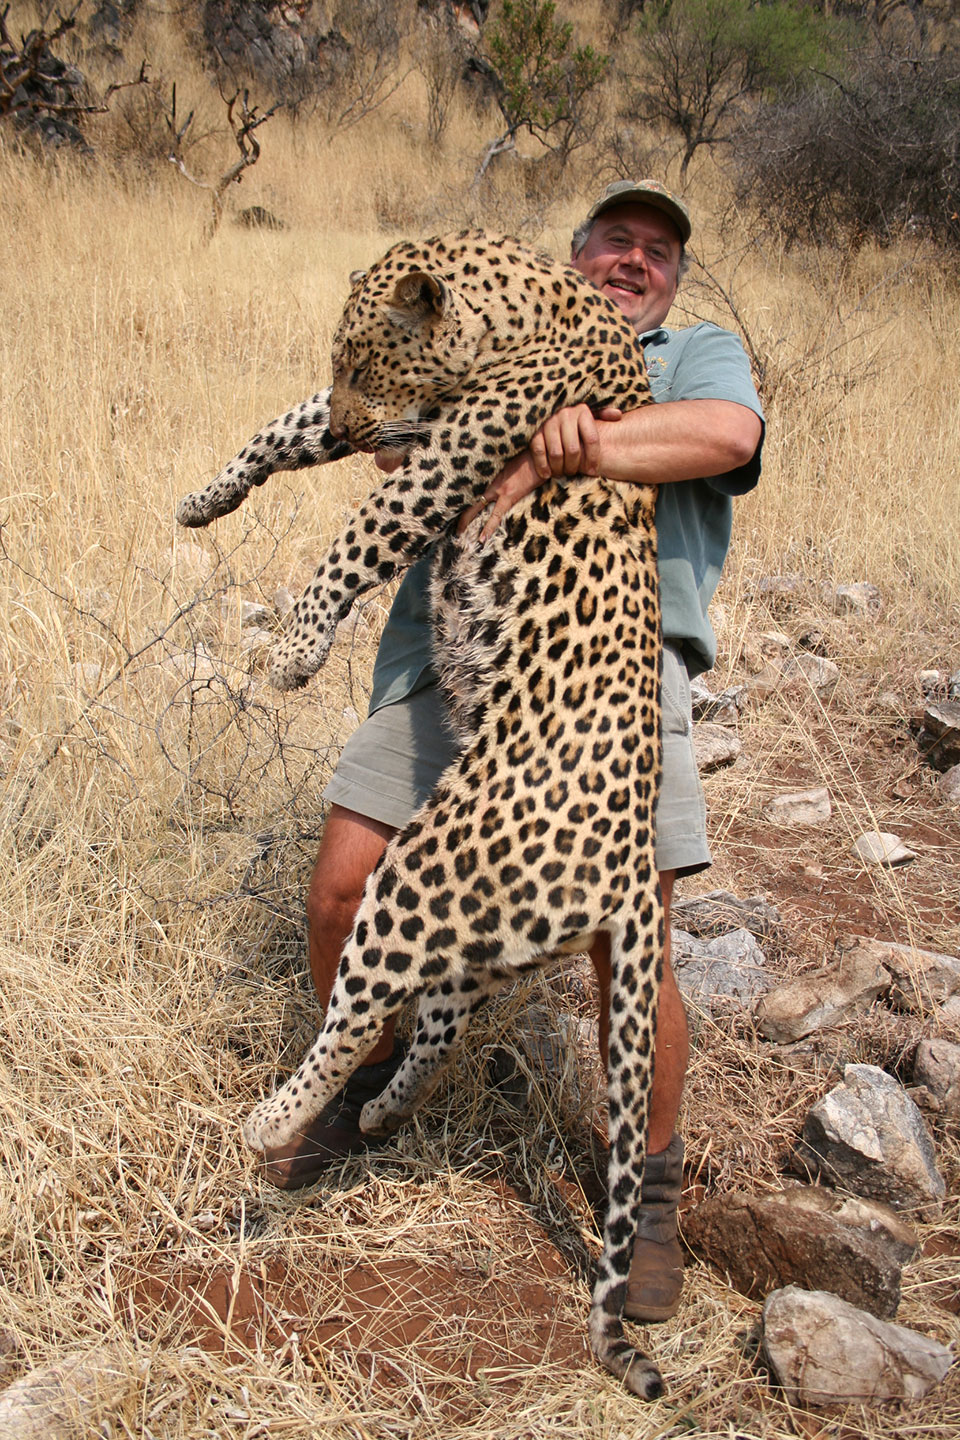 leopard-hunting-safaris-Namibia-Africa.jpg